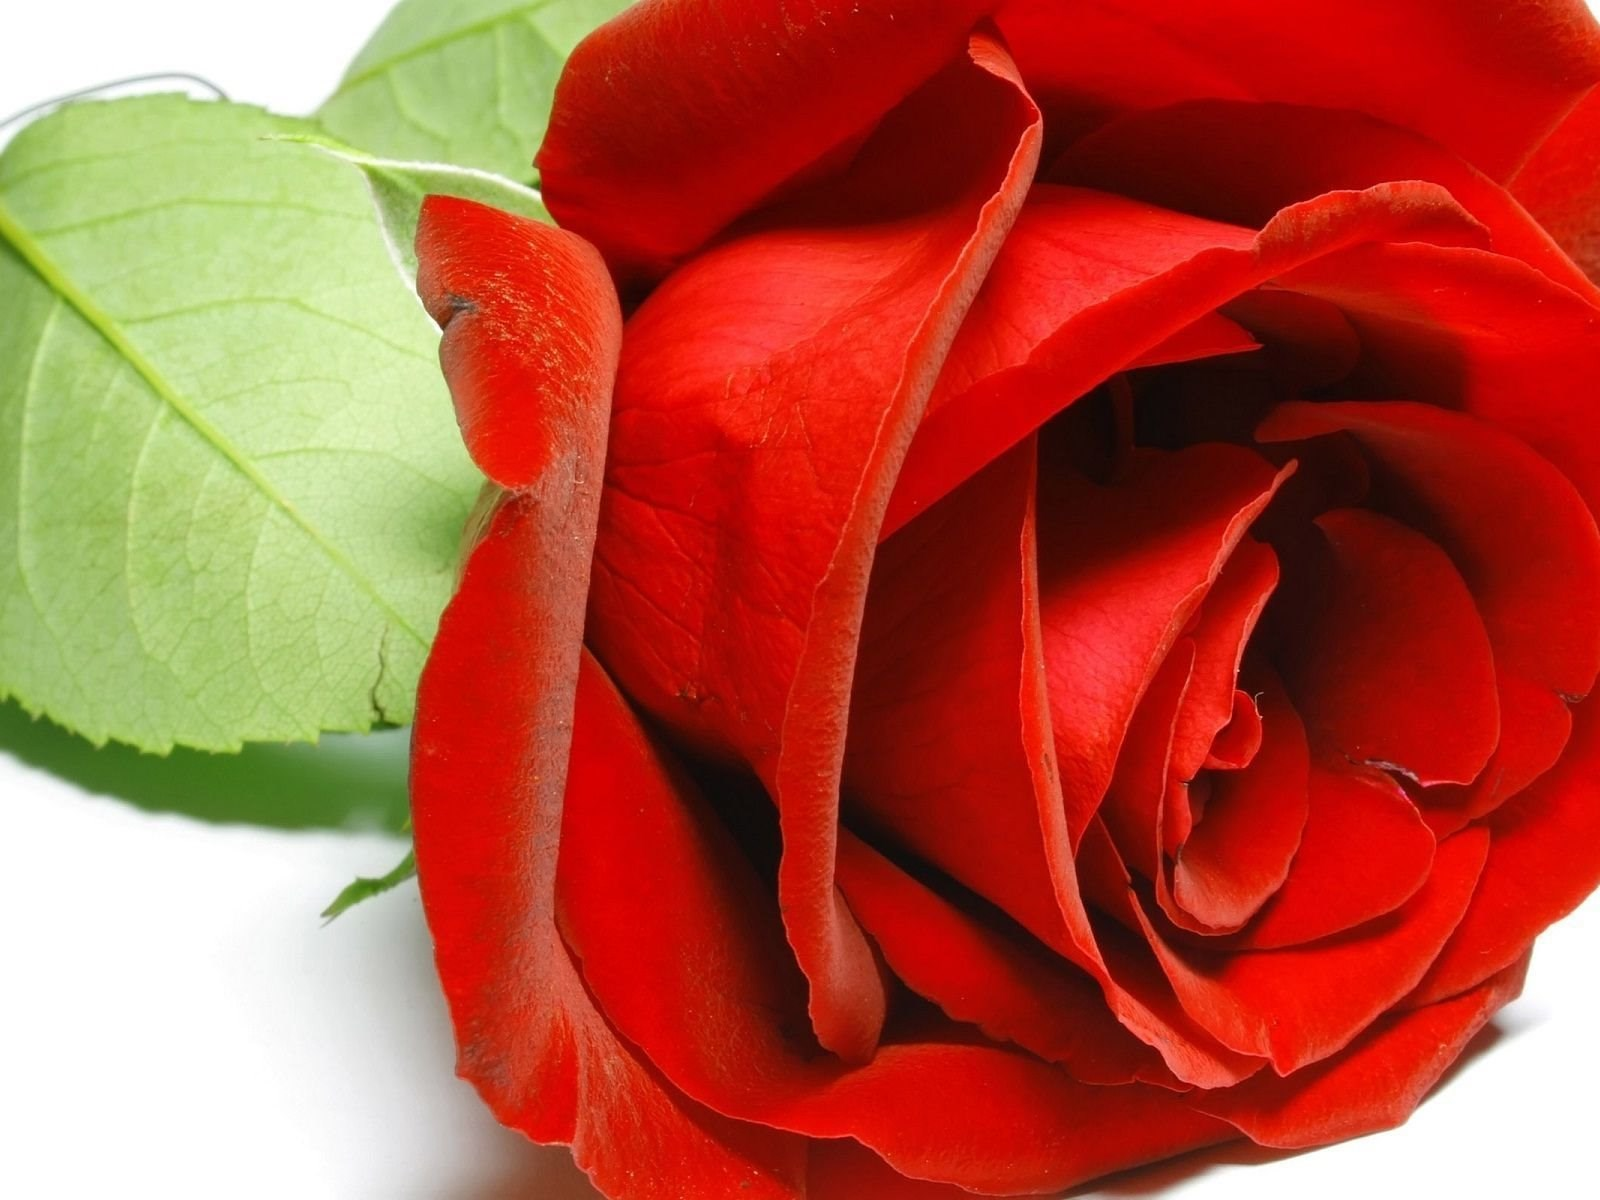 Red Rose Flower Full Hd Wallpapers New Hd Wallpapernew Hd Wallpapers